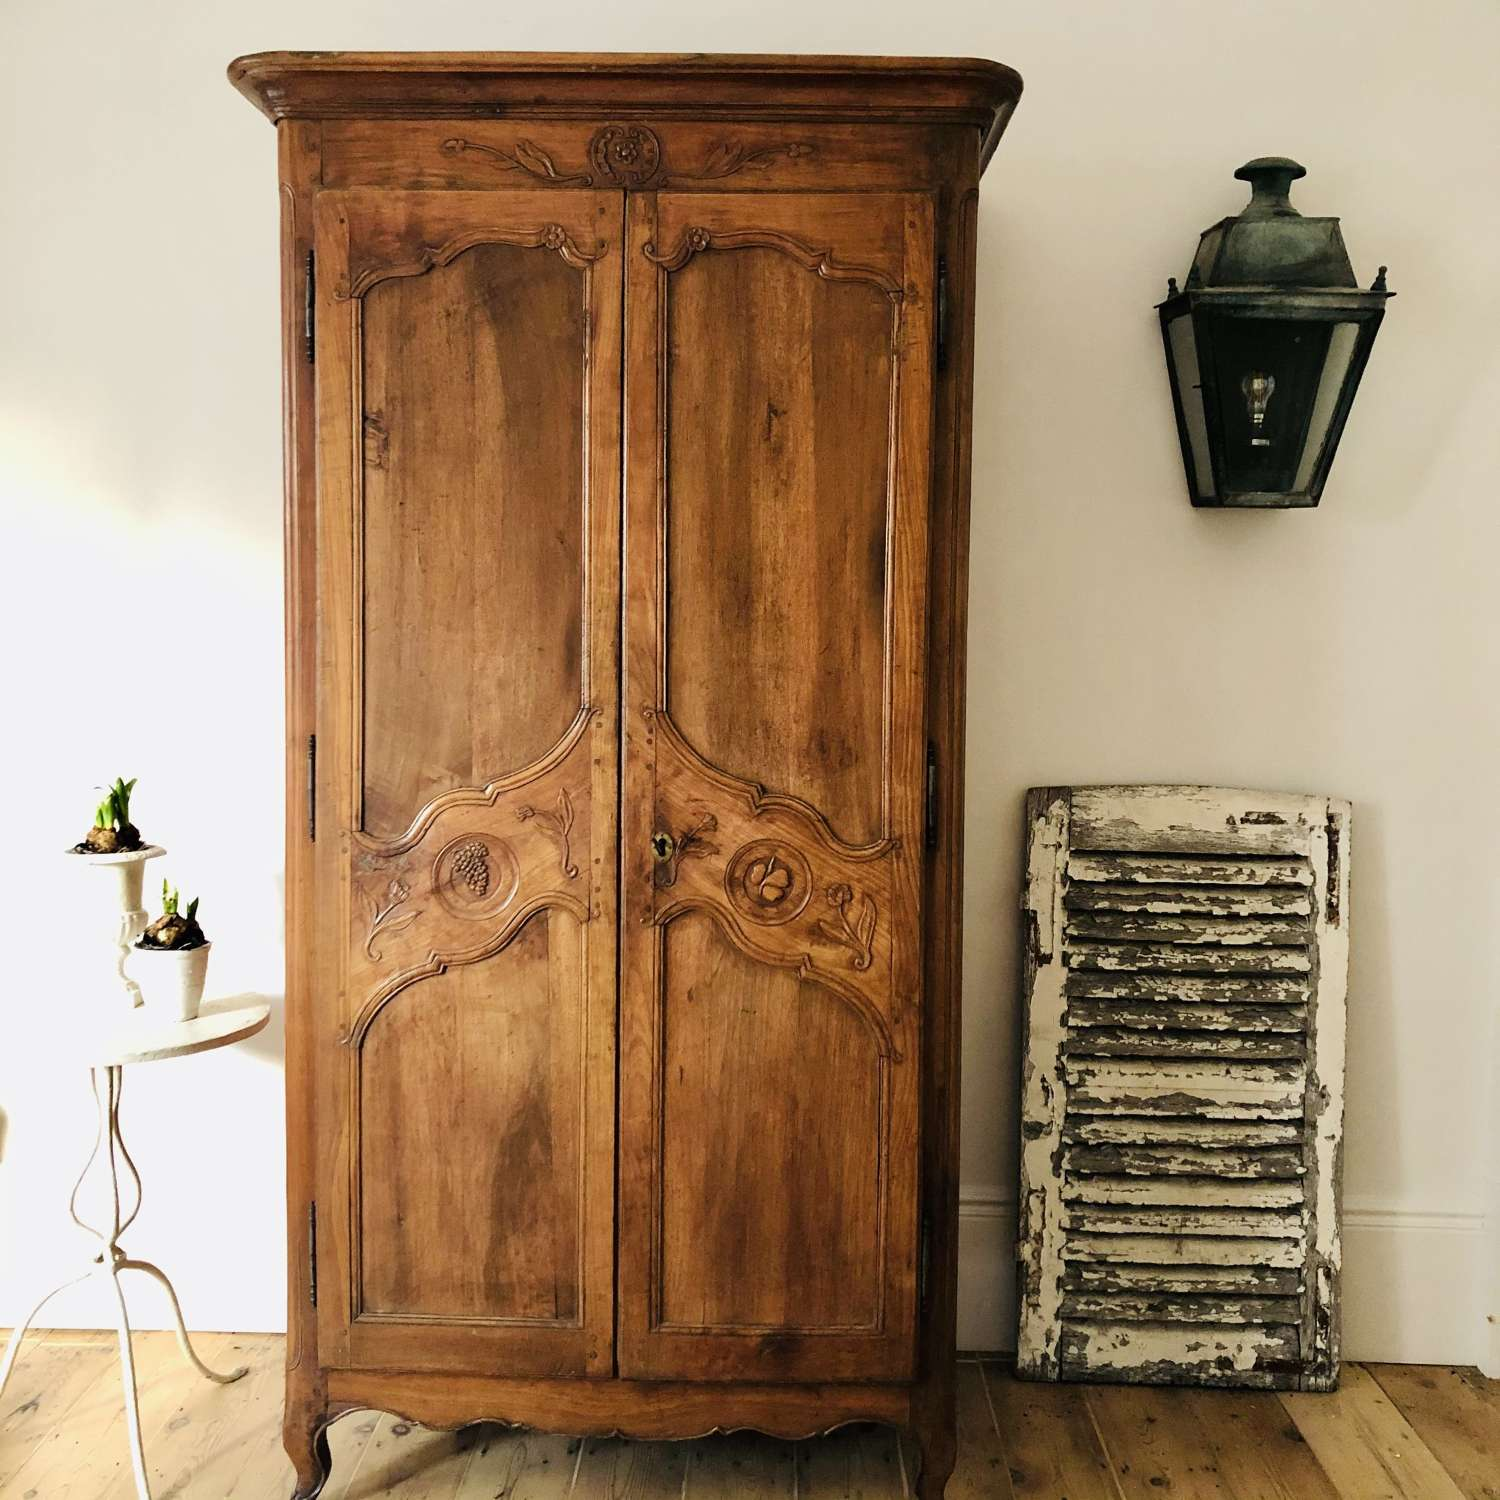 Antique French walnut armoire wardrobe with hanging rail